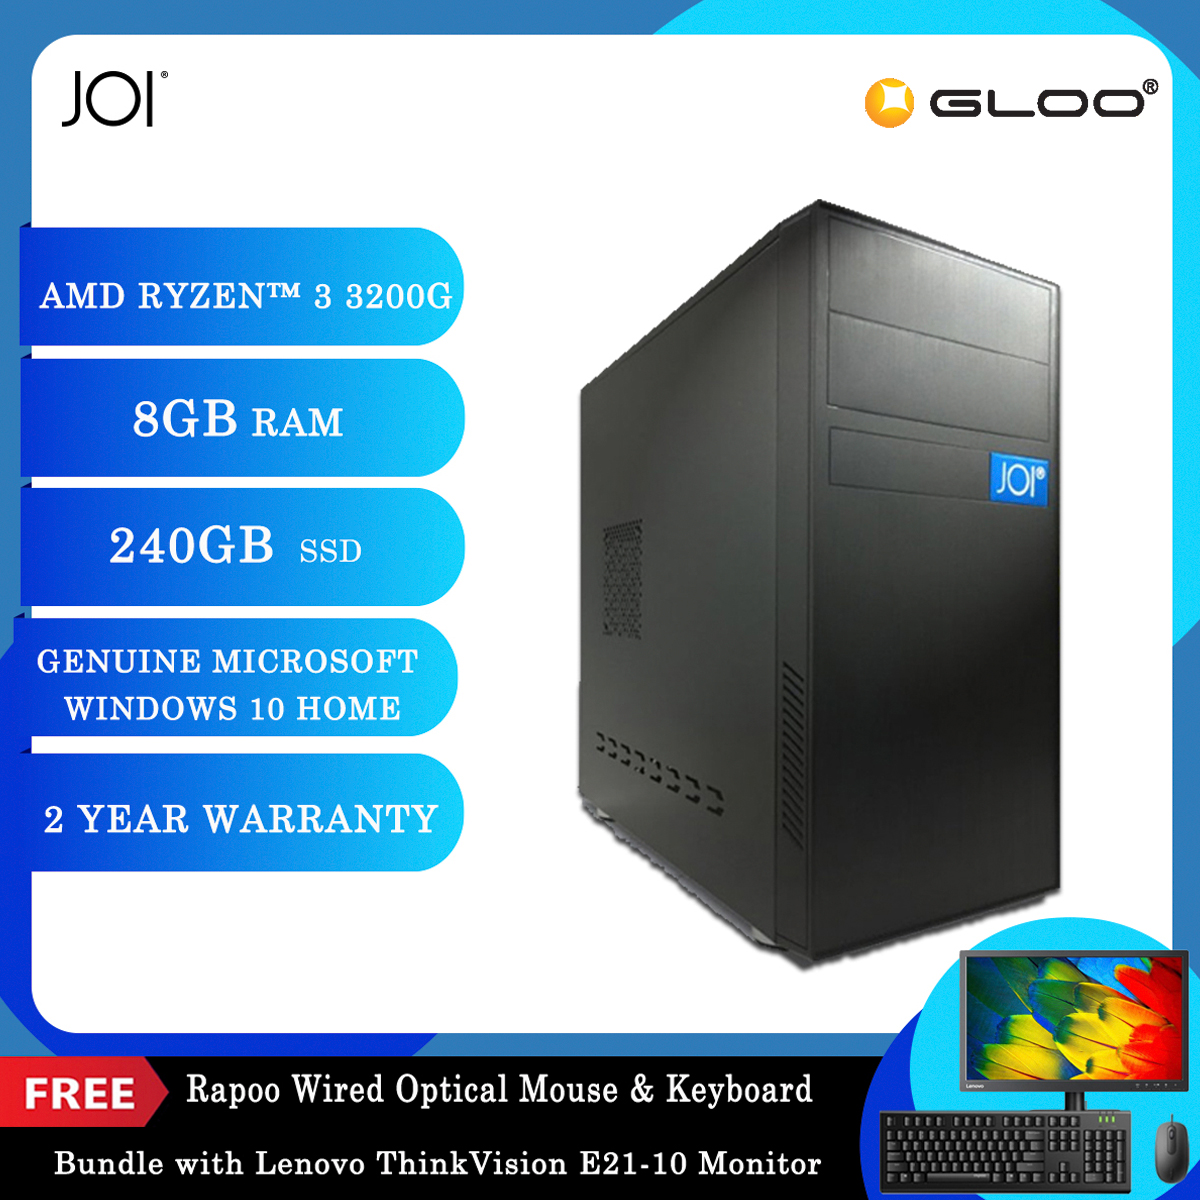 "JOI PC A1032 (Ryzen 3 3200G/8G/240GB SSD/W10H)+Lenovo 20.7"" Monitor+Free Combo Wired Keyboard+Mouse"